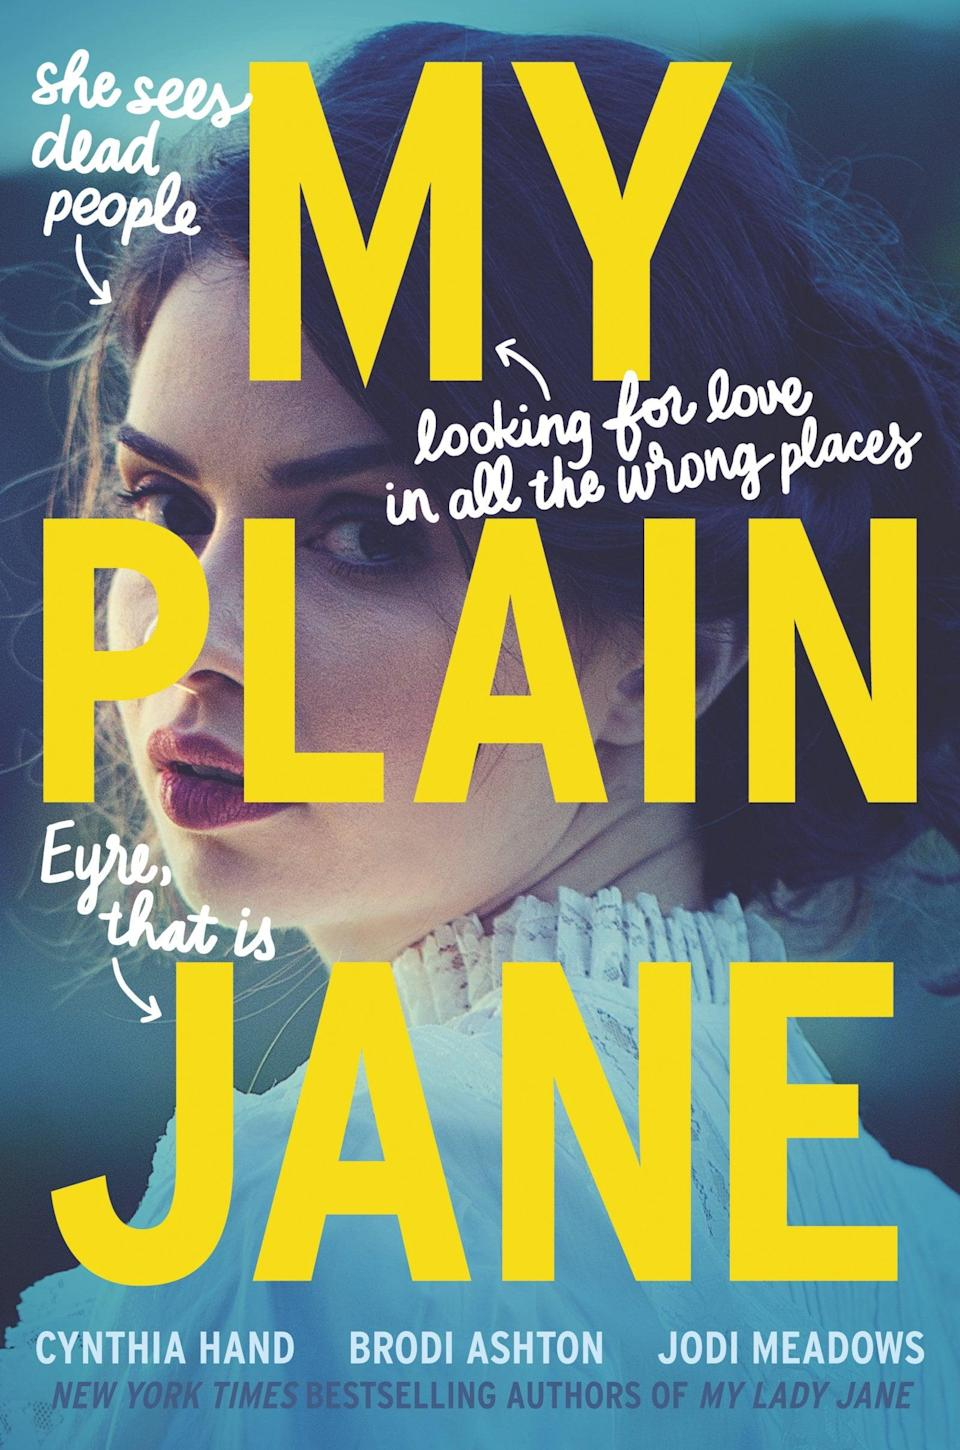 <p><strong>Jane Eyre</strong> is a superb Fall read, but it's nowhere near as cozy as Cynthia Hand, Brodi Ashton, and Jodi Meadows's clever retelling <span><strong>My Plain Jane</strong></span>. This version still has Mr. Rochester and a Gothic mansion, but it also has Jane communing with ghosts and hanging out with Charlotte Brontë, which is a major upgrade, in our opinion.</p>